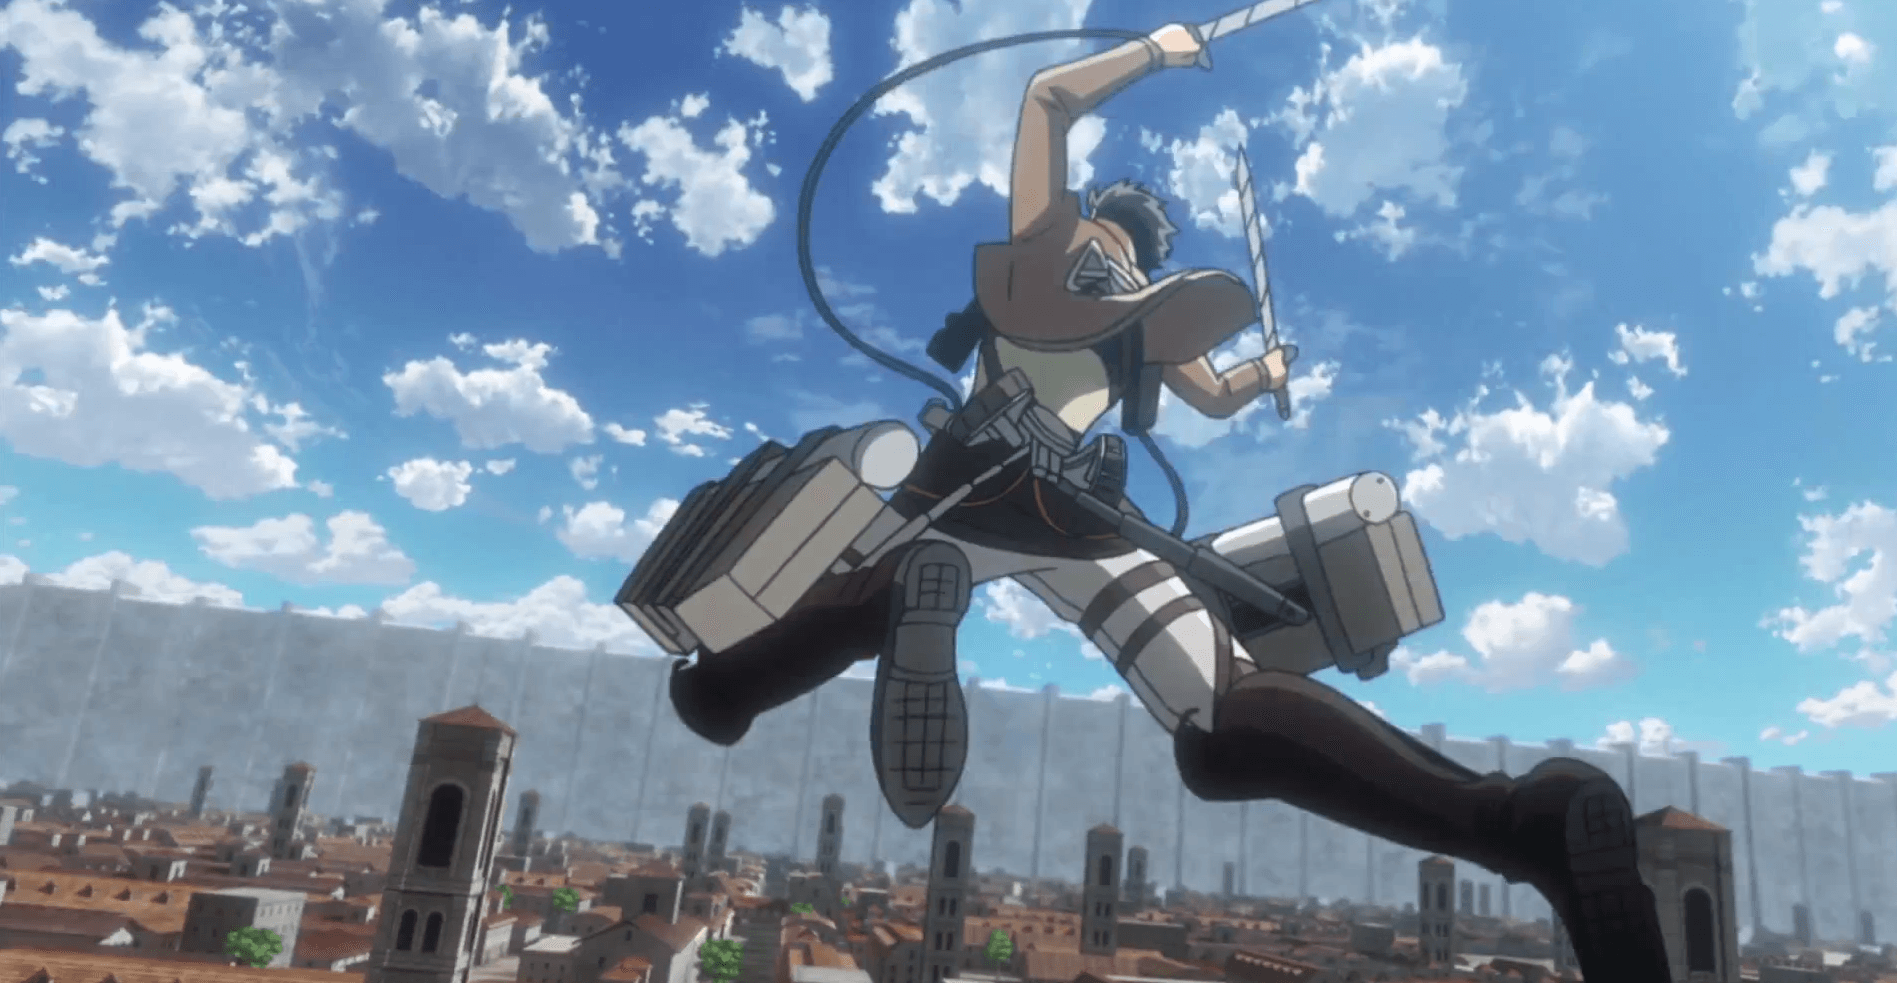 Attack On Titan Episode 18 Review: Objectifies Women, Is Thrilling